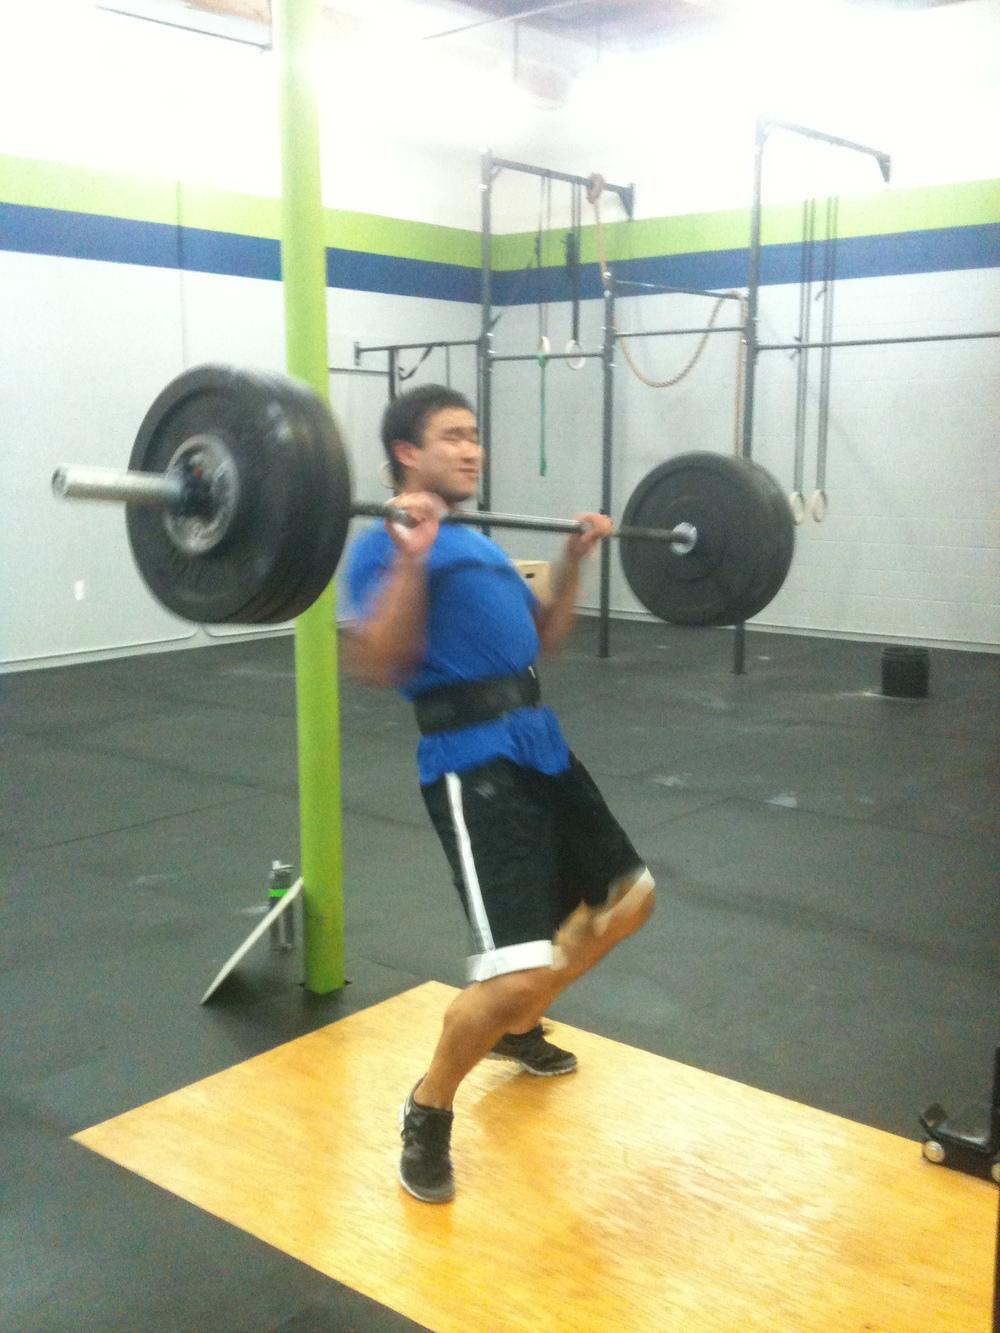 Ronny hit a PR clean and jerk today (155#)!